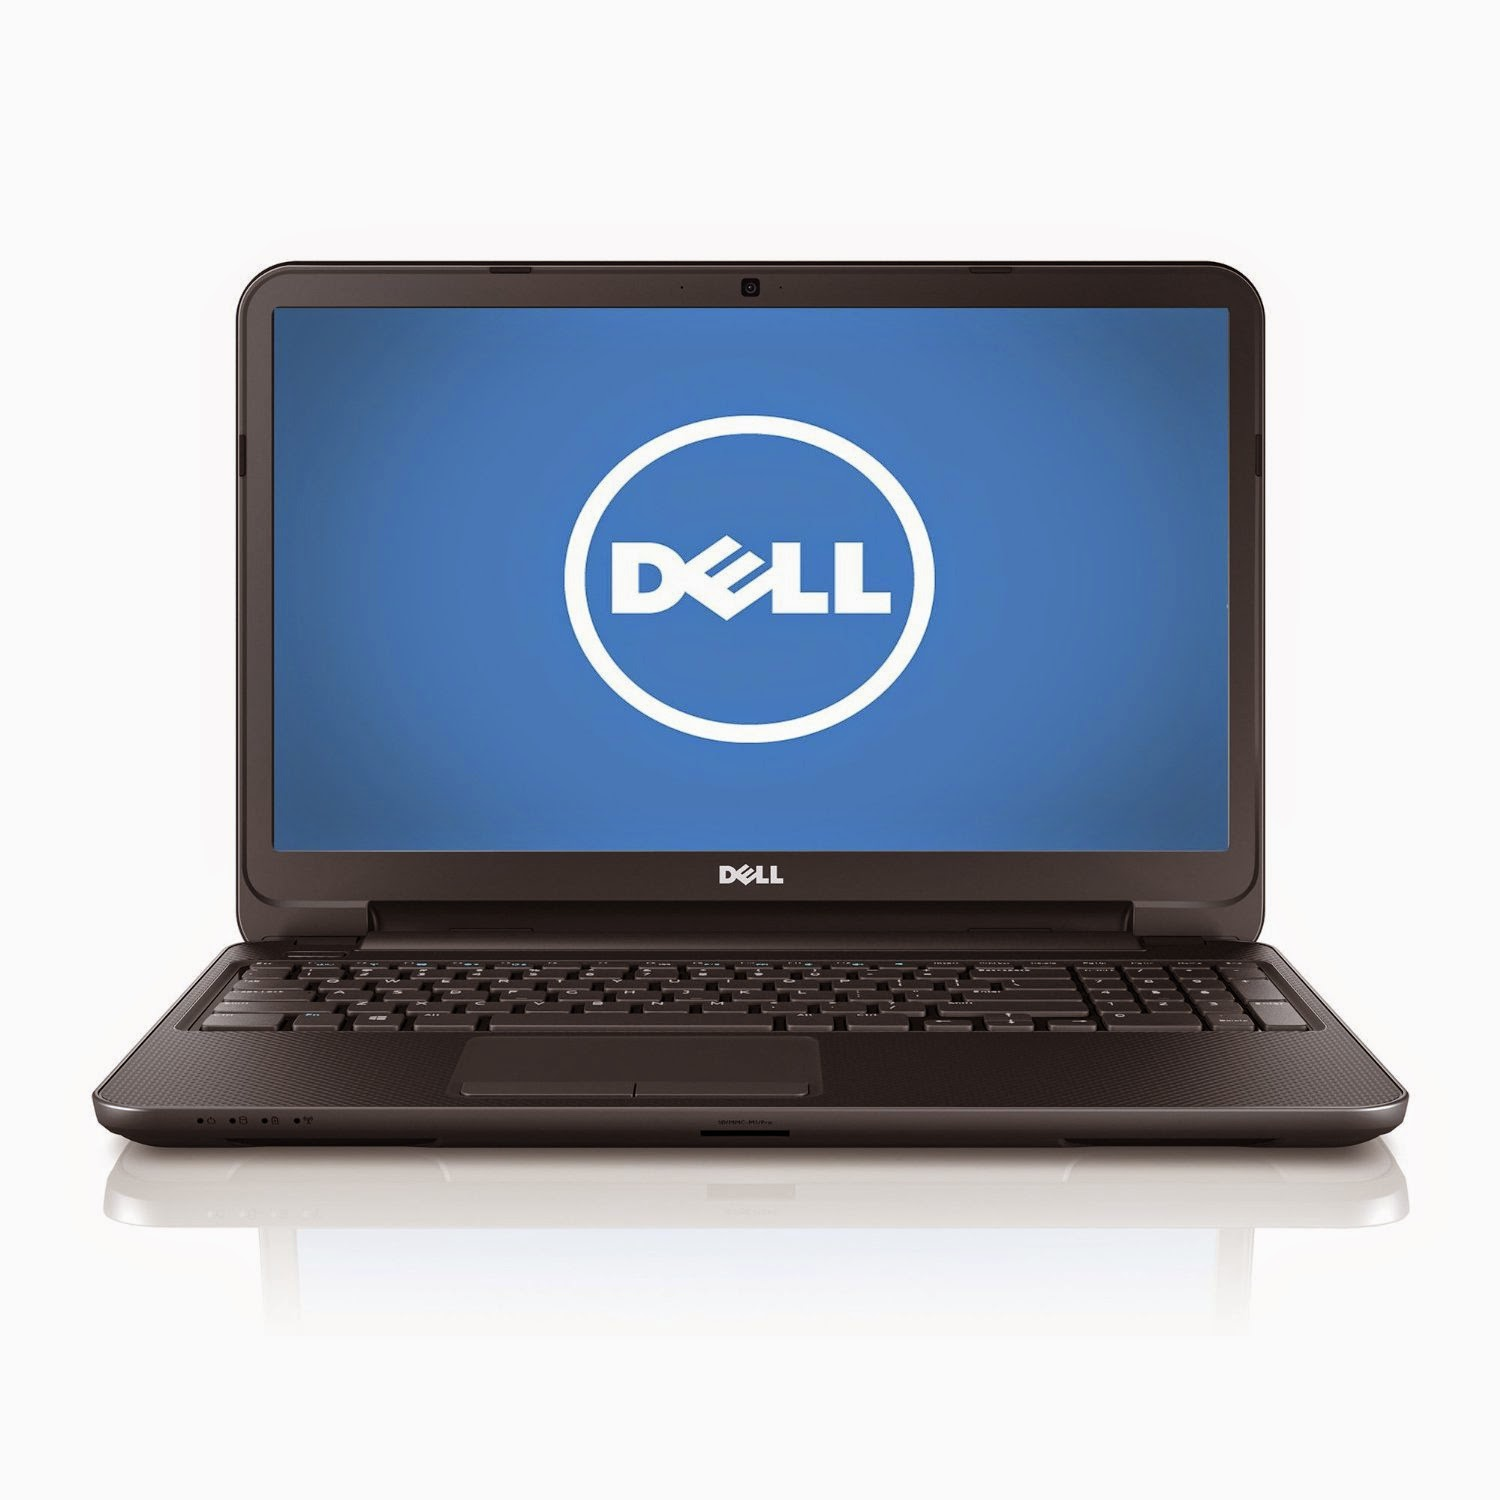 dell inspiron 6400 drivers windows 7 installer driver. Black Bedroom Furniture Sets. Home Design Ideas